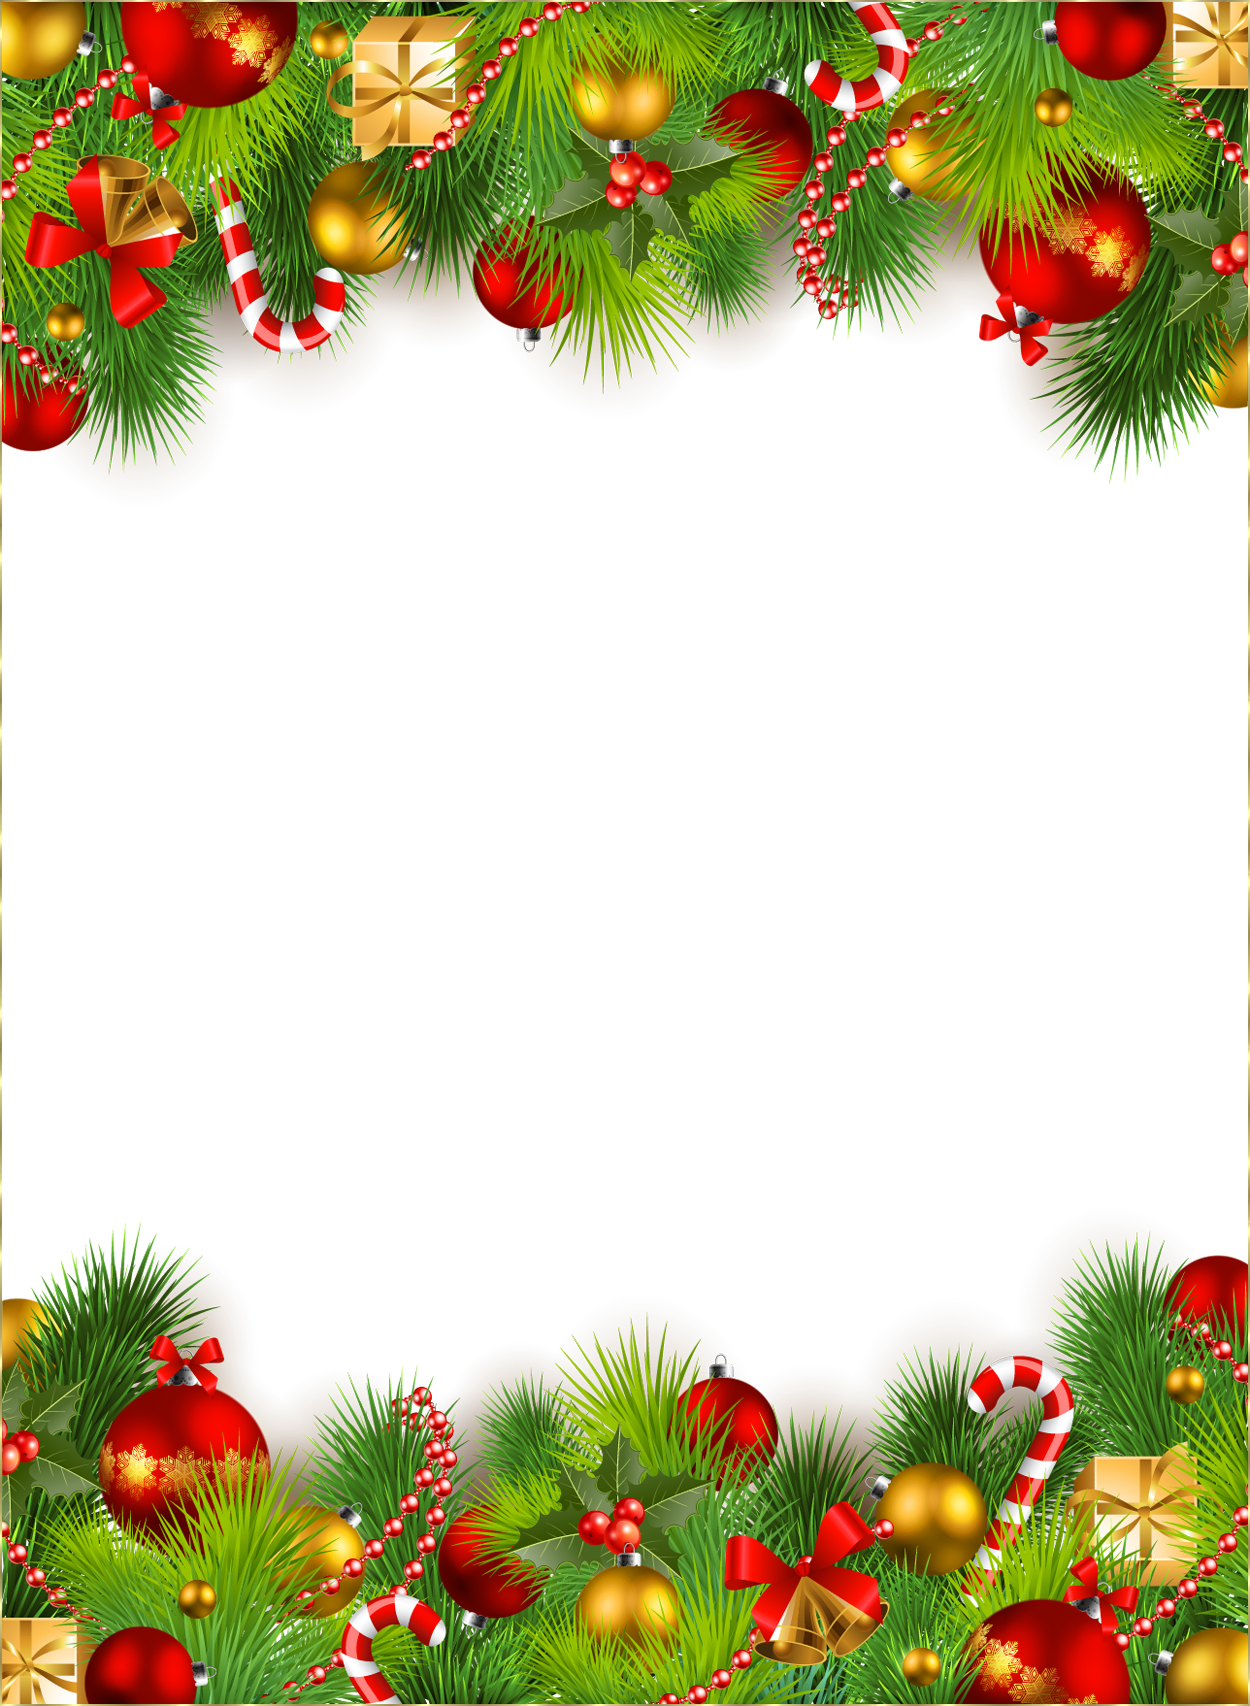 Free christmas png. Image without background web